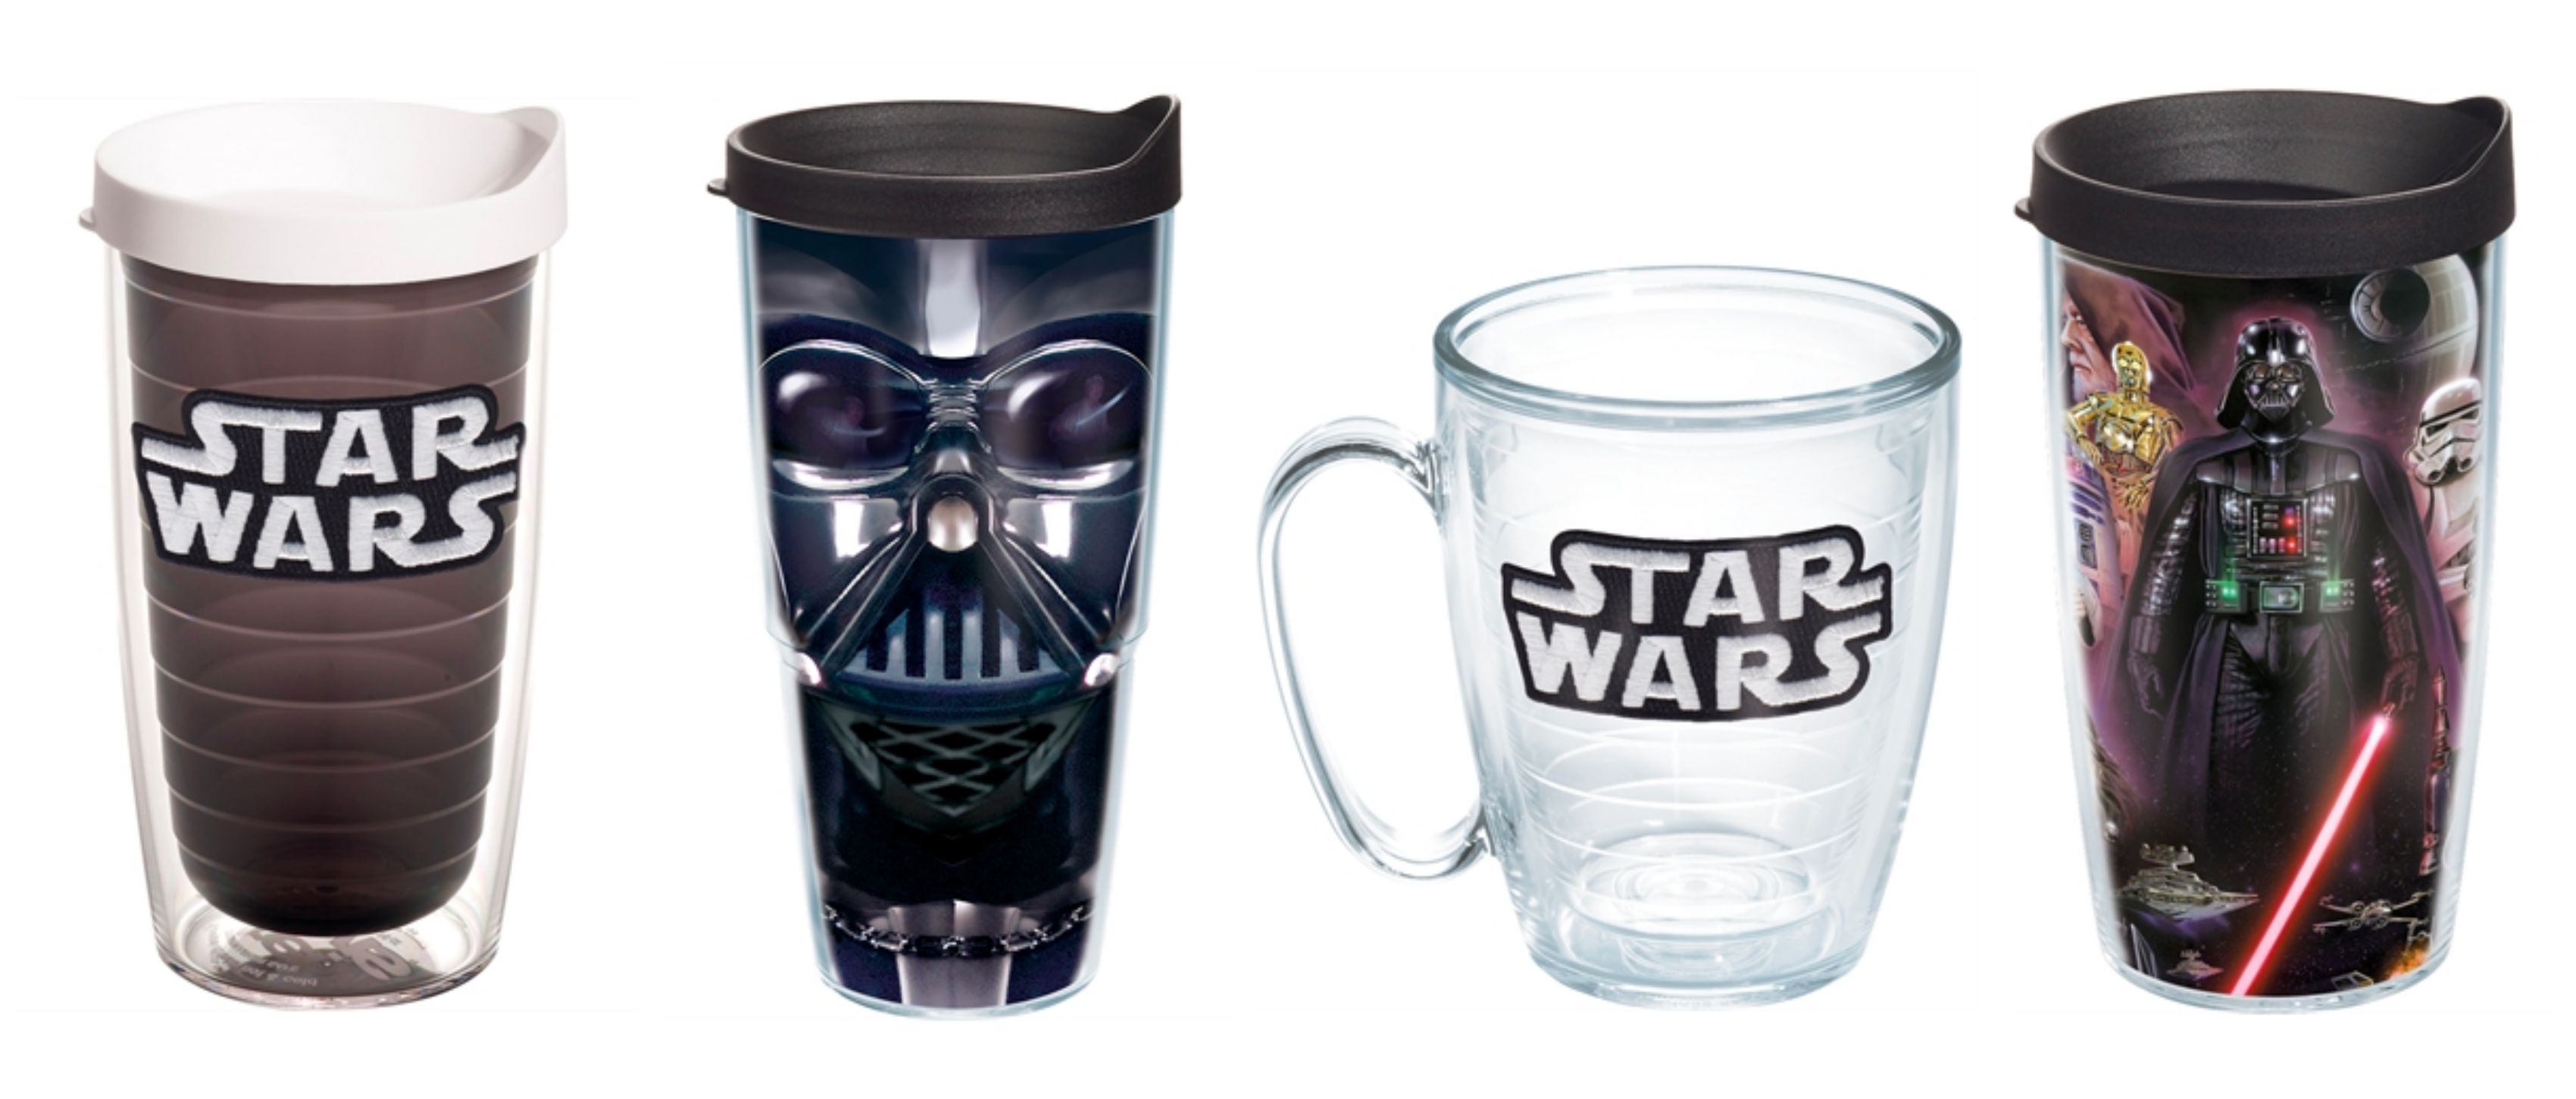 star wars tervis tumblers